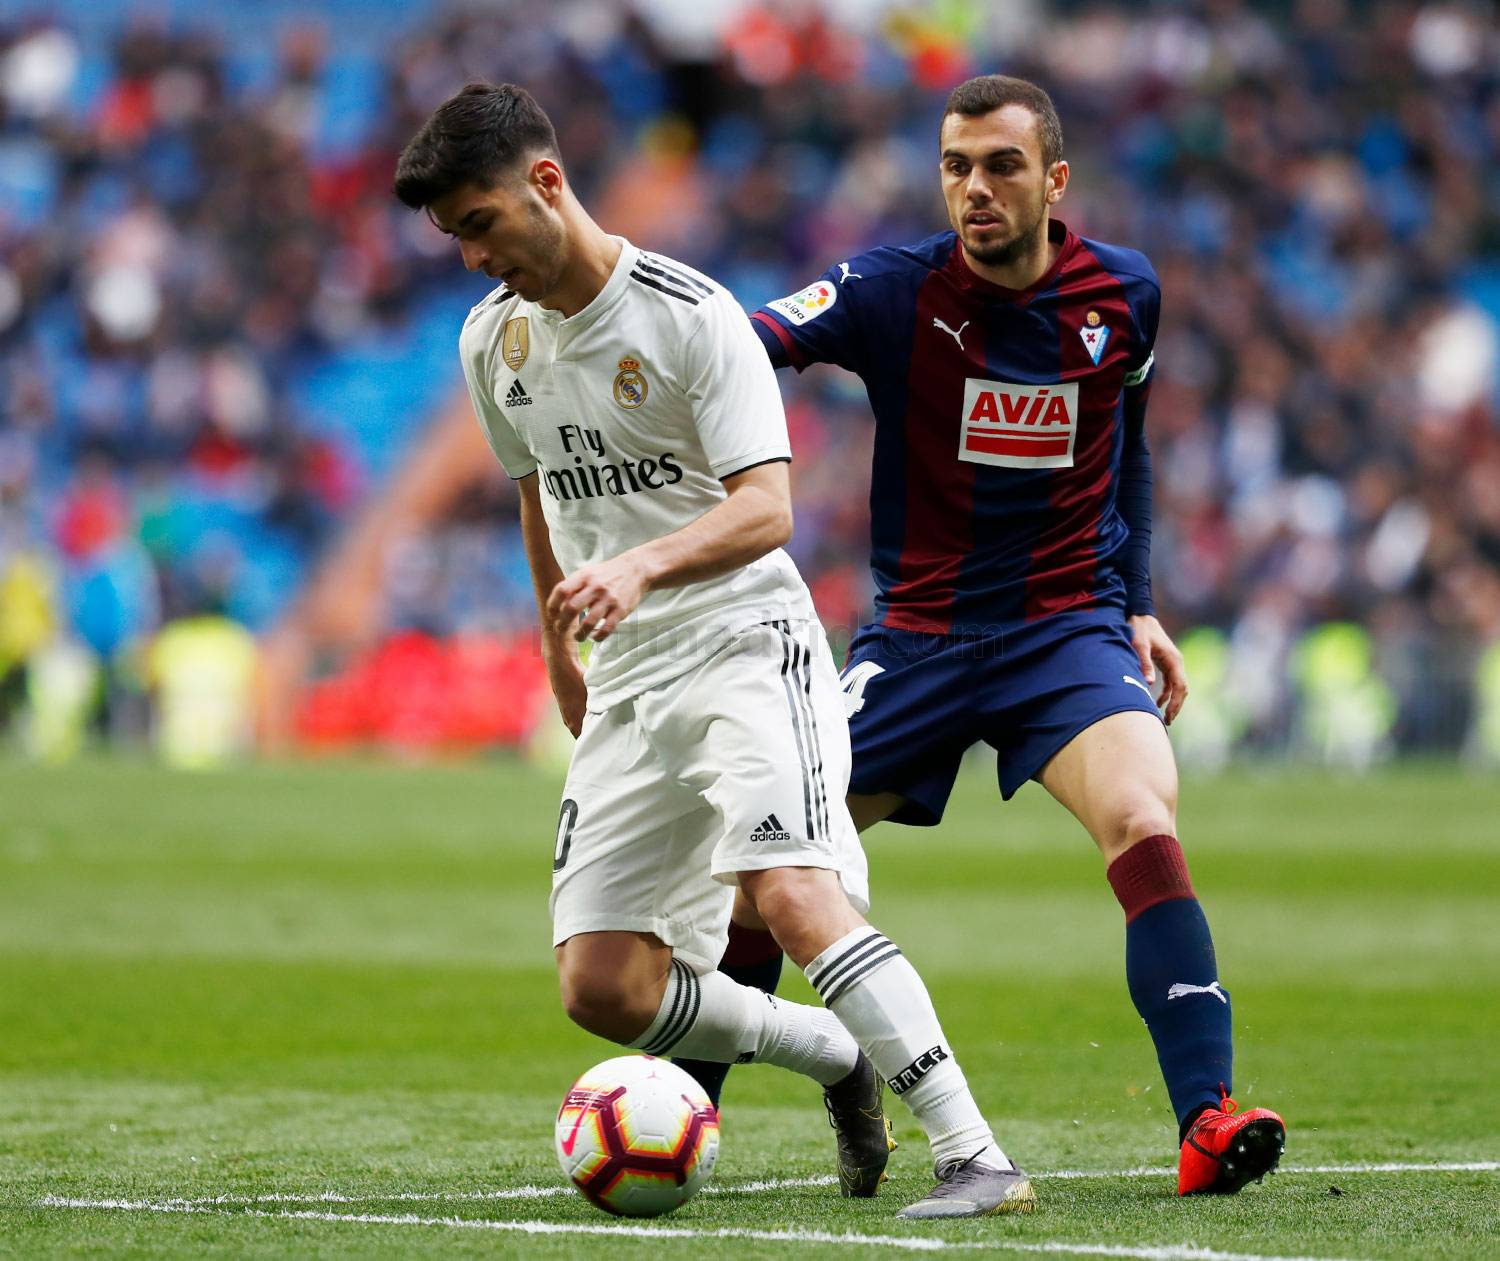 Real Madrid - Real Madrid - Éibar - 06-04-2019